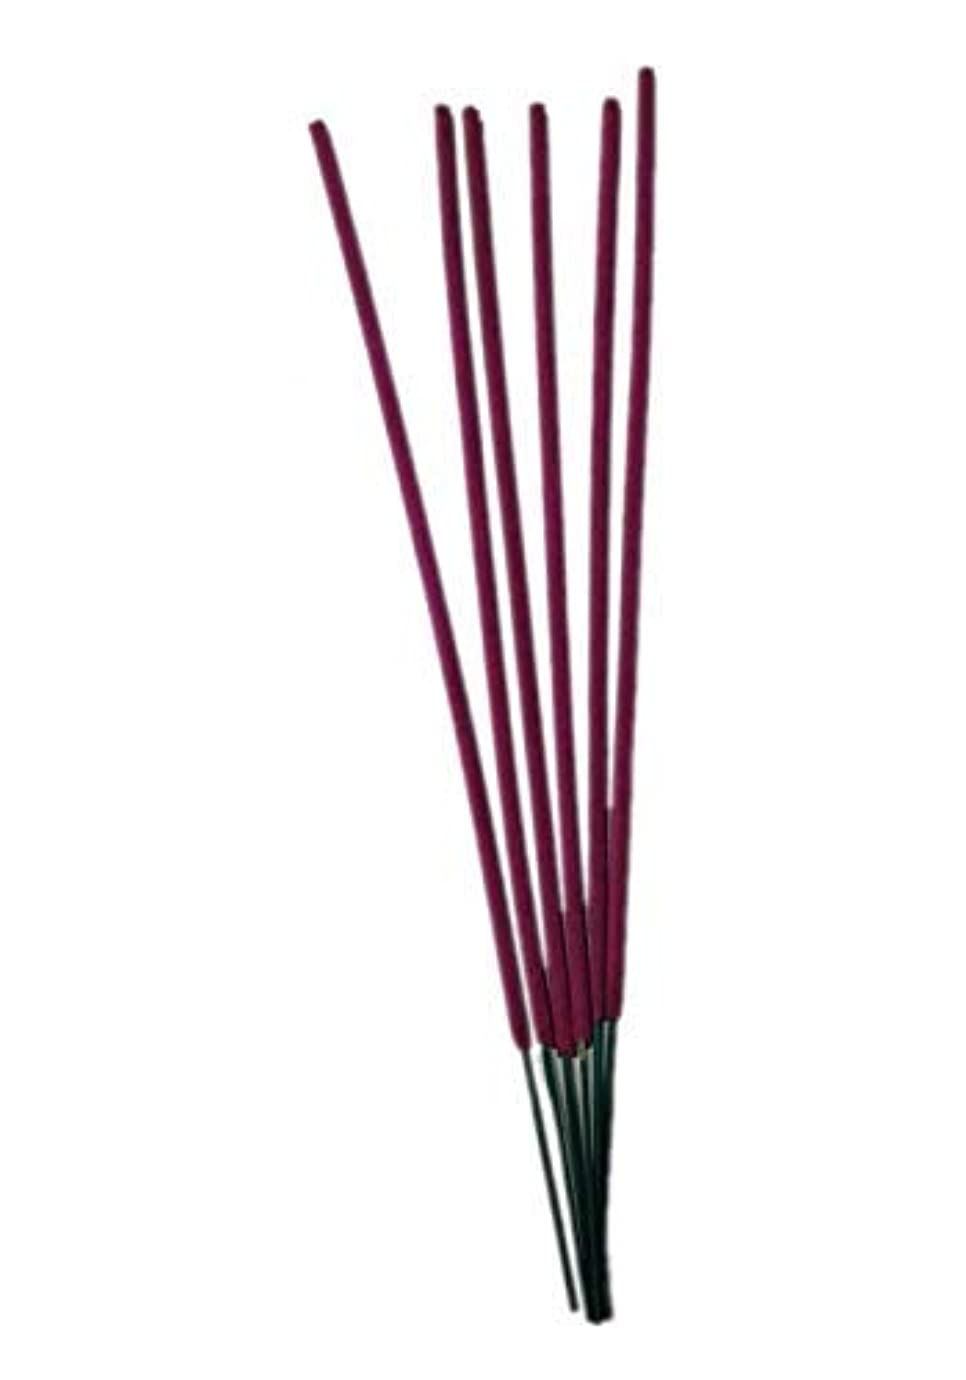 ディンカルビル南マーカーAMUL Agarbatti Pink Incense Sticks (1 Kg. Pack)